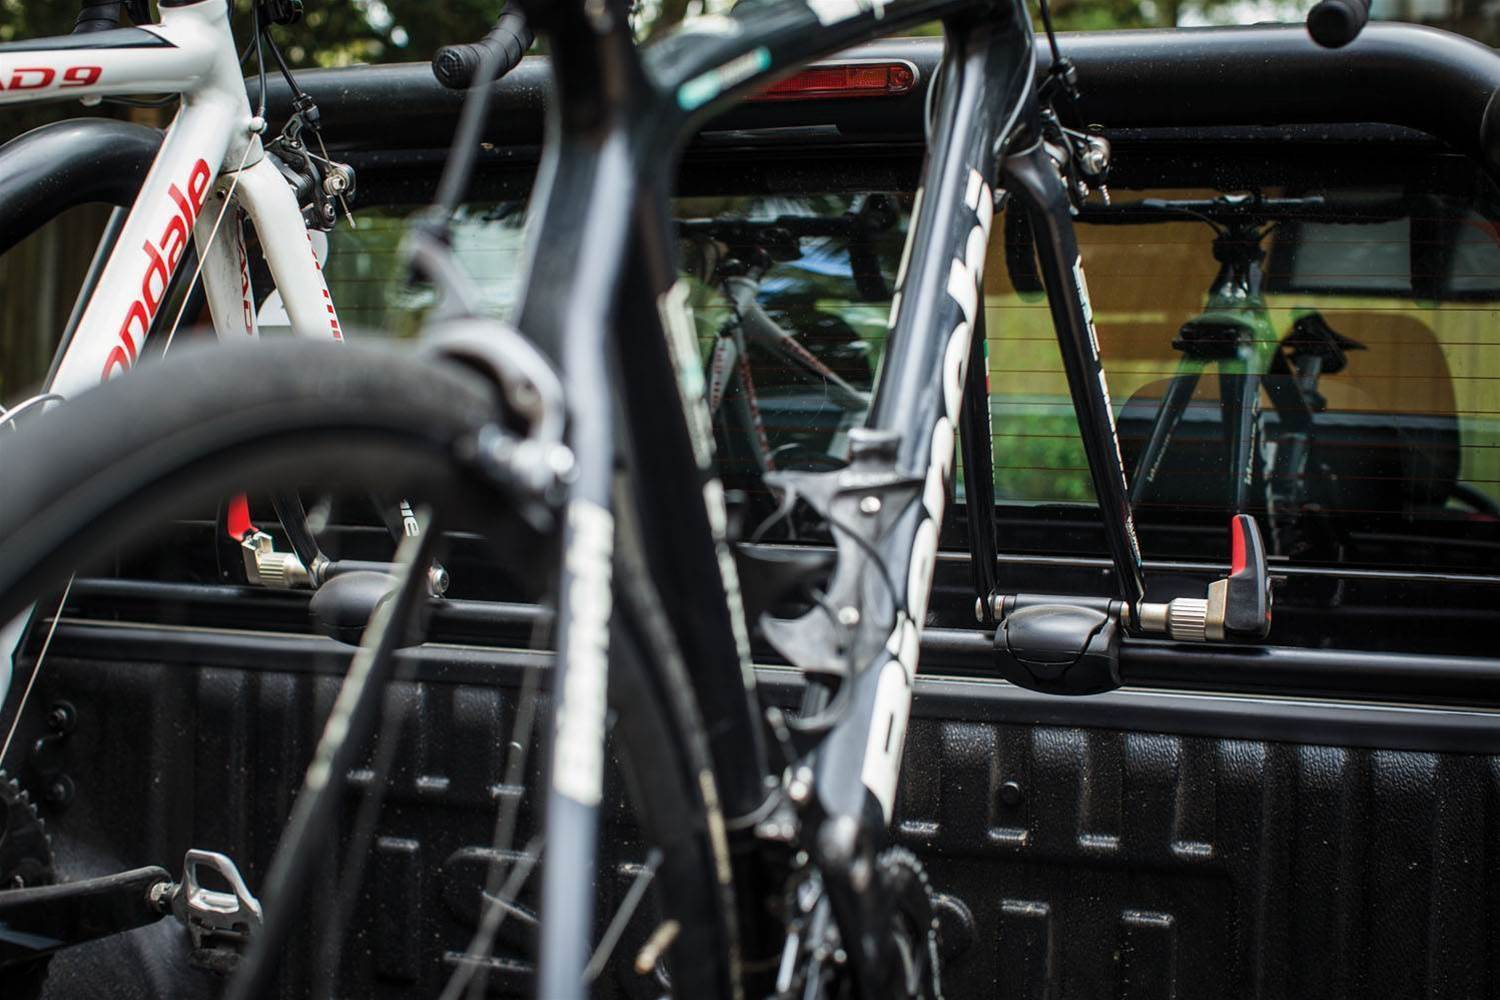 TESTED: Yakima bike bar